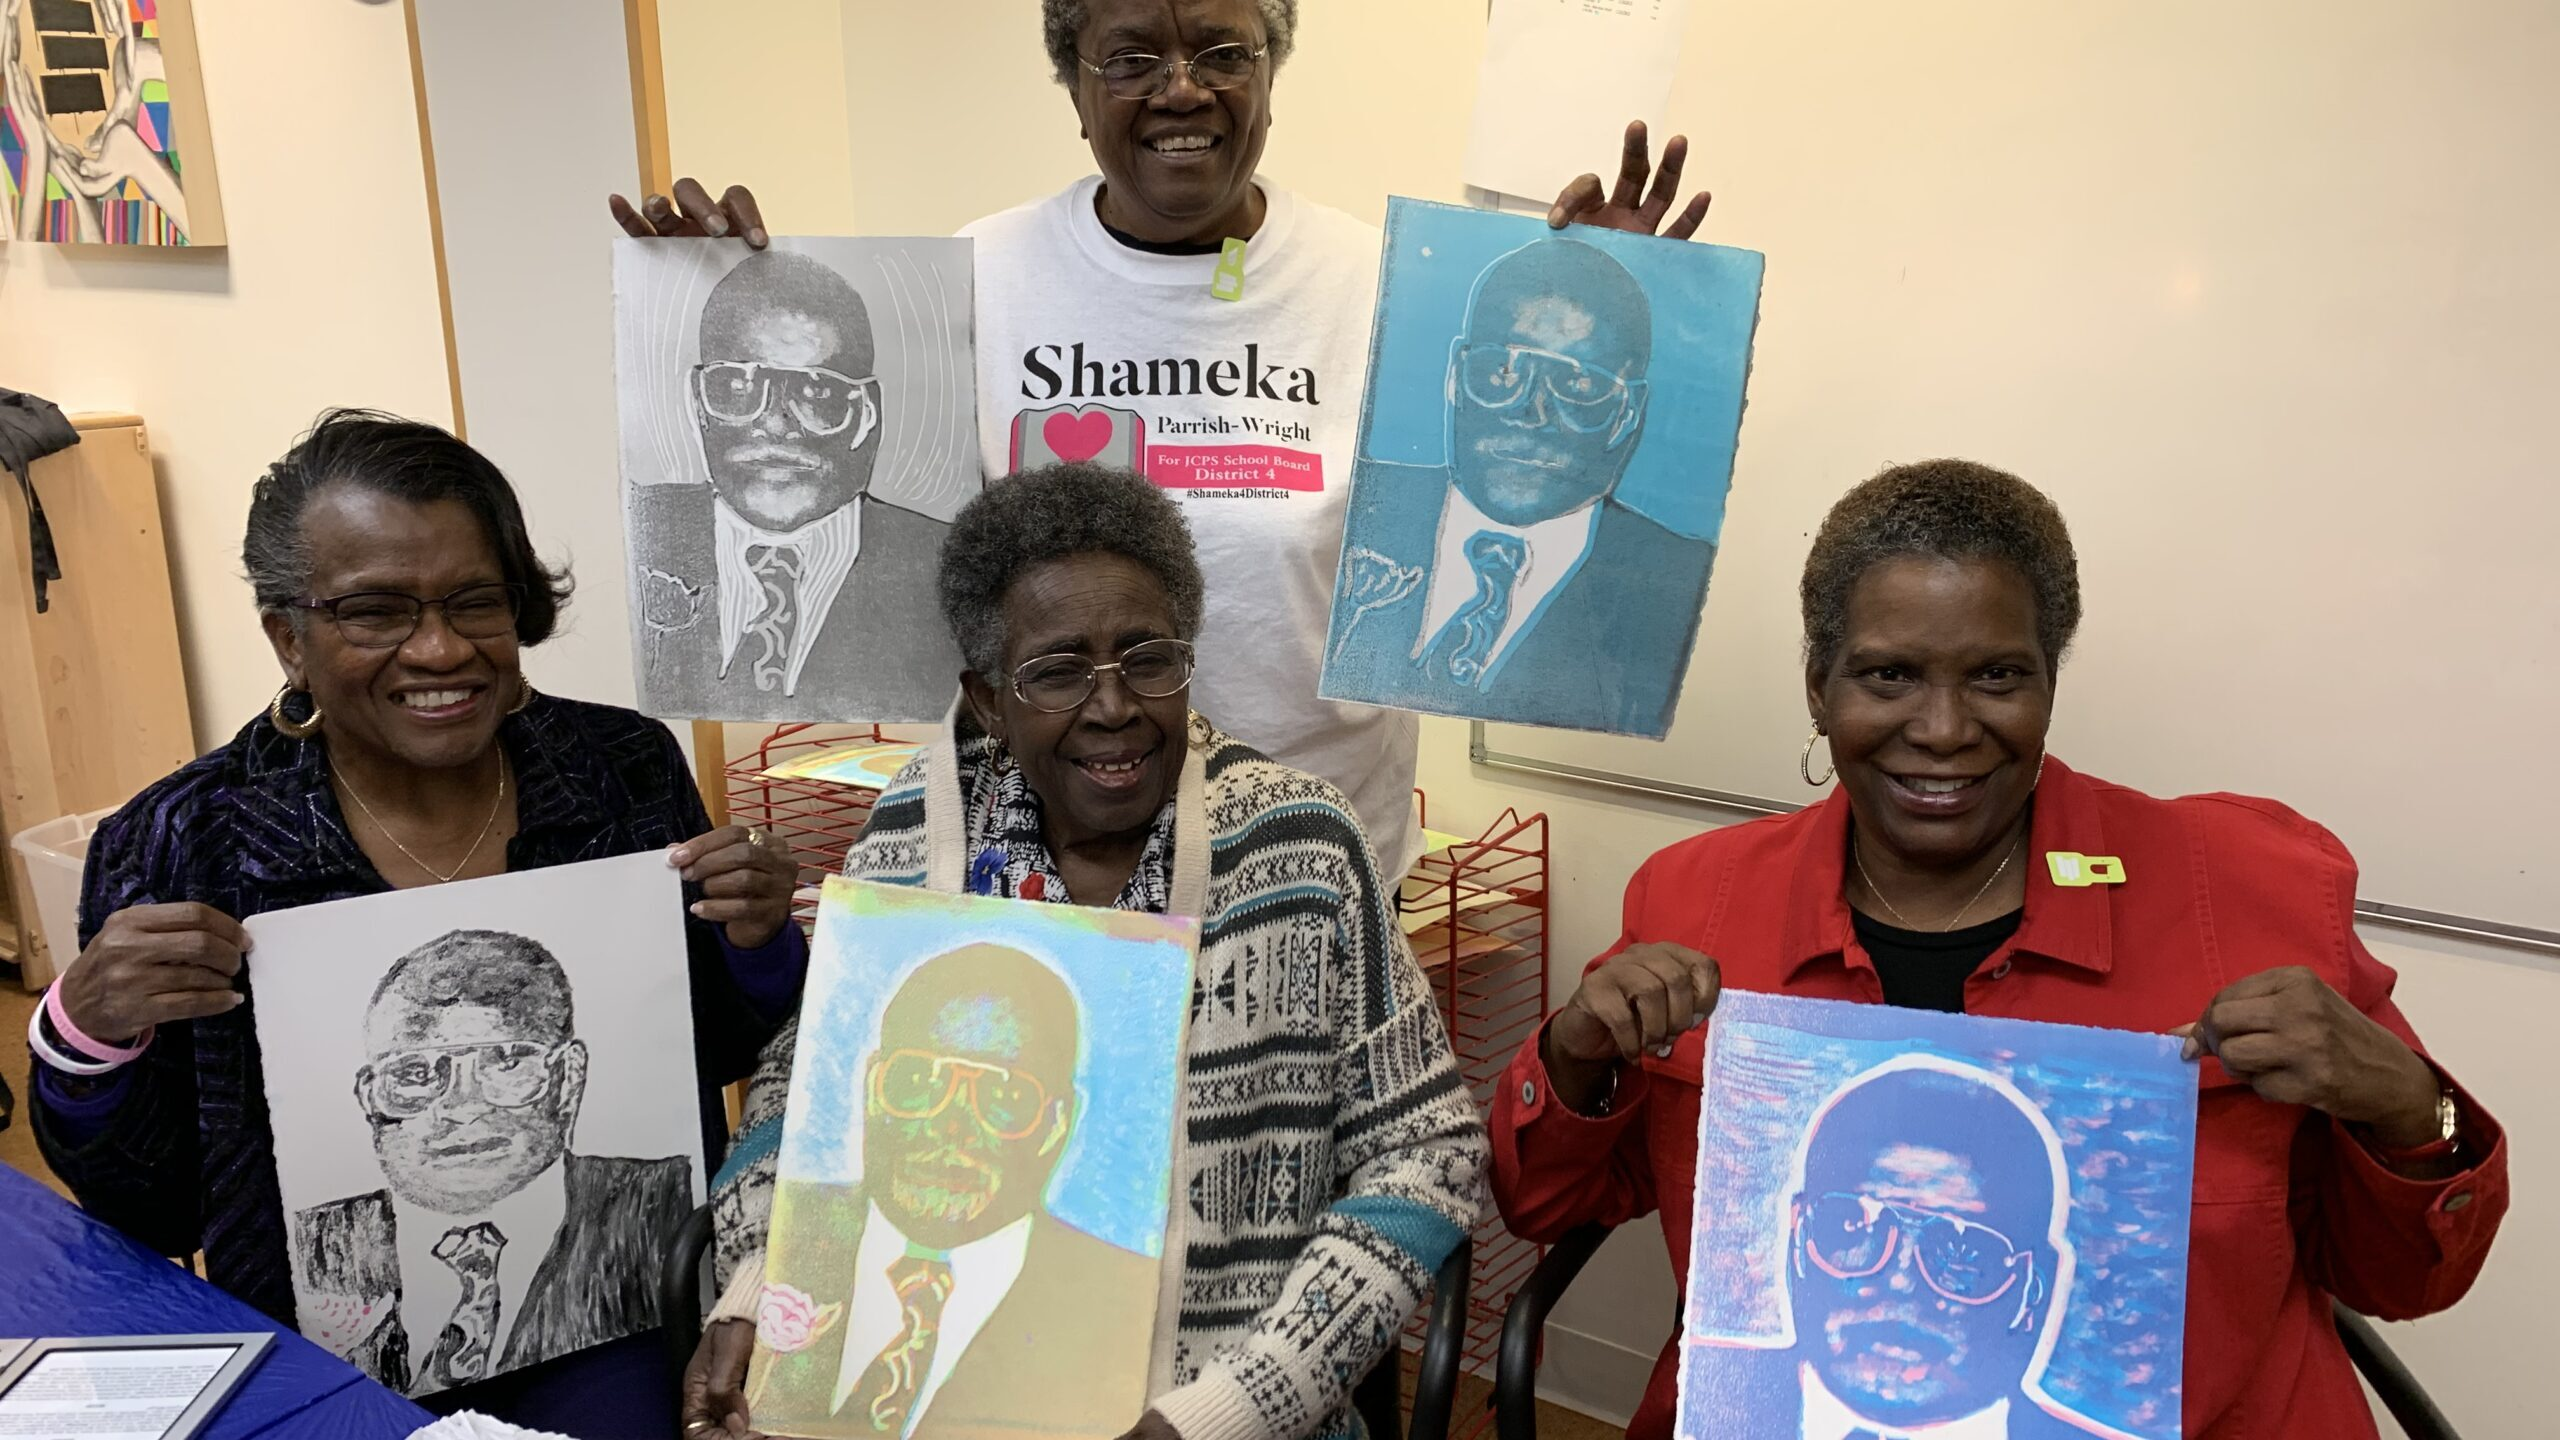 A group of people holding up pop art portraits of a Black man